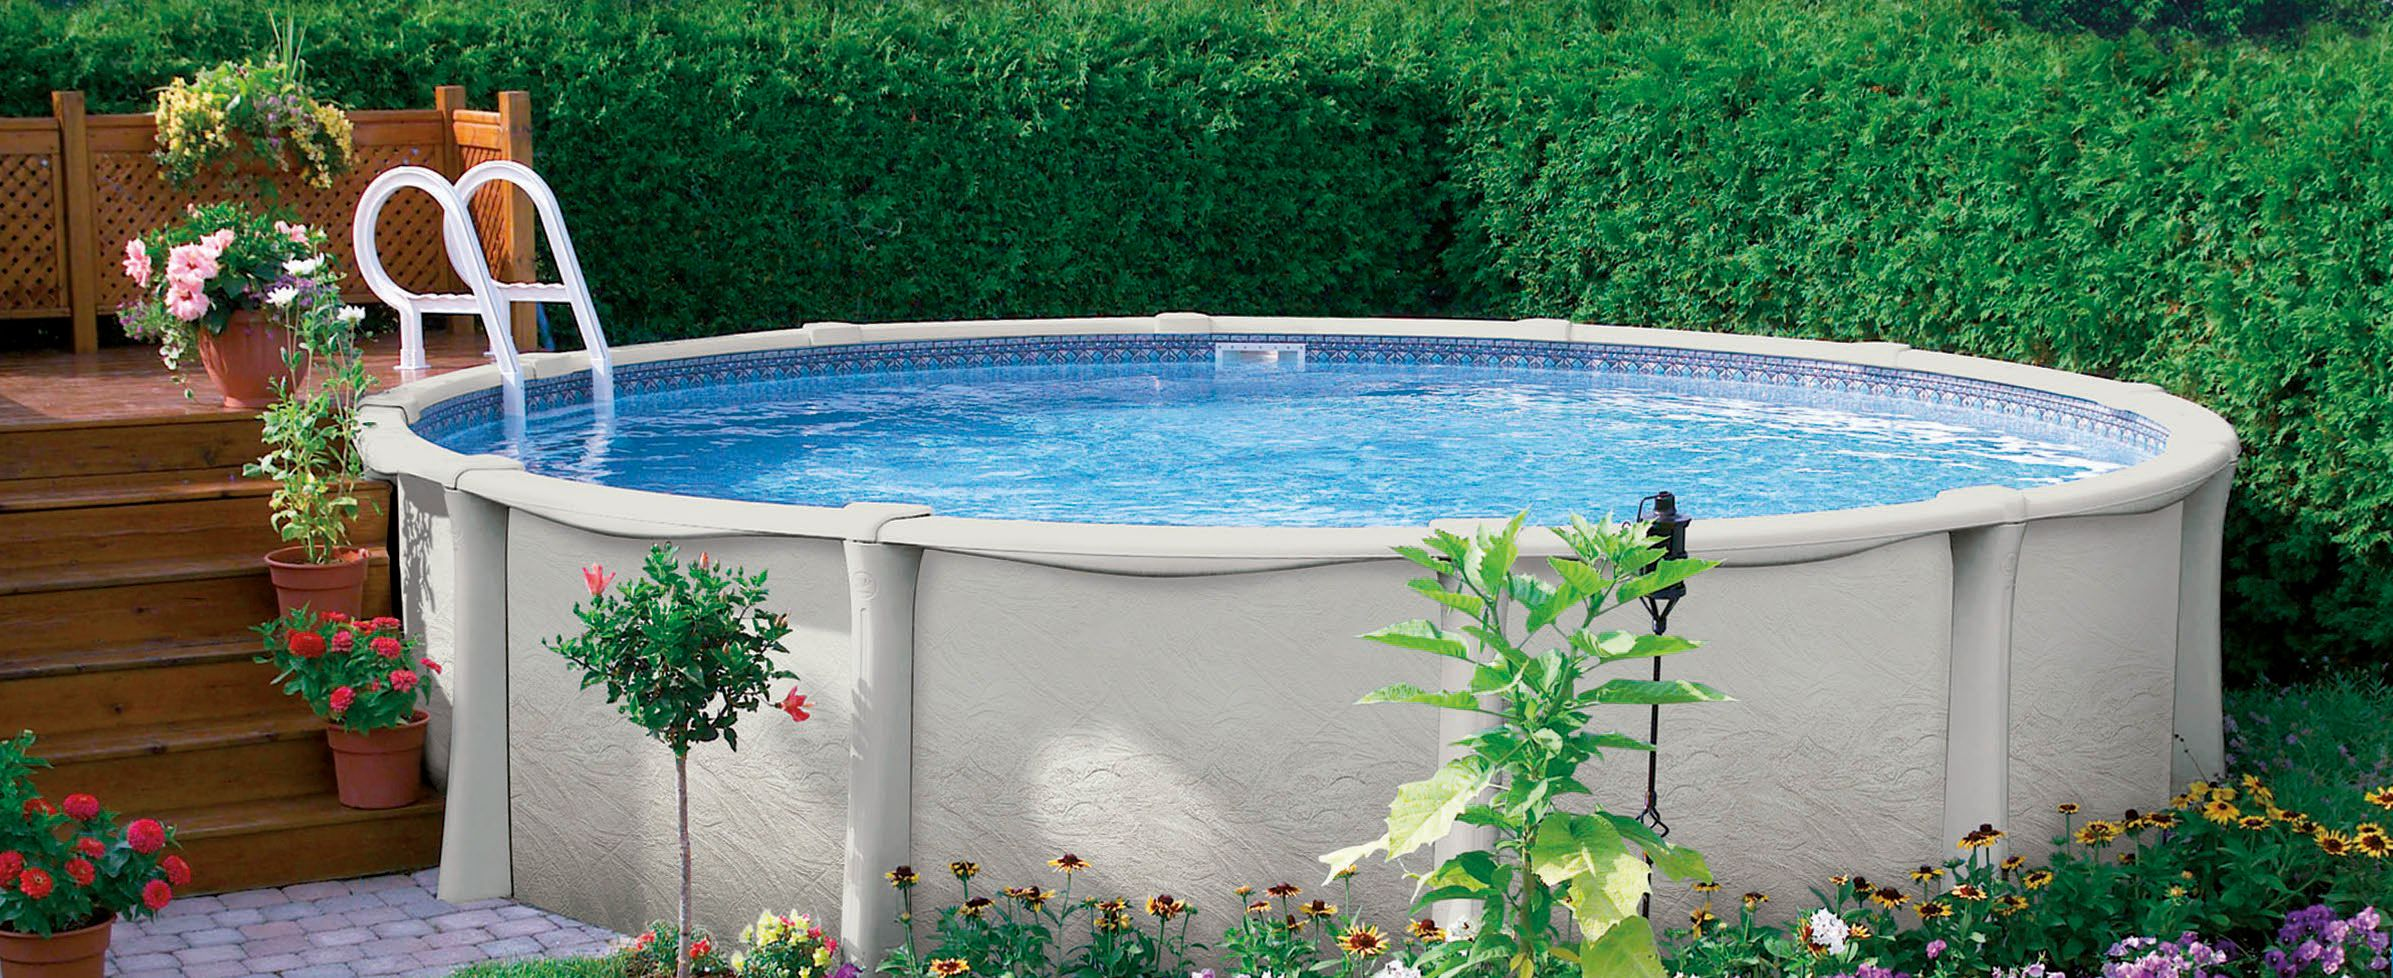 Piscine hors sol piscine for Aspirateur piscine hors sol jilong